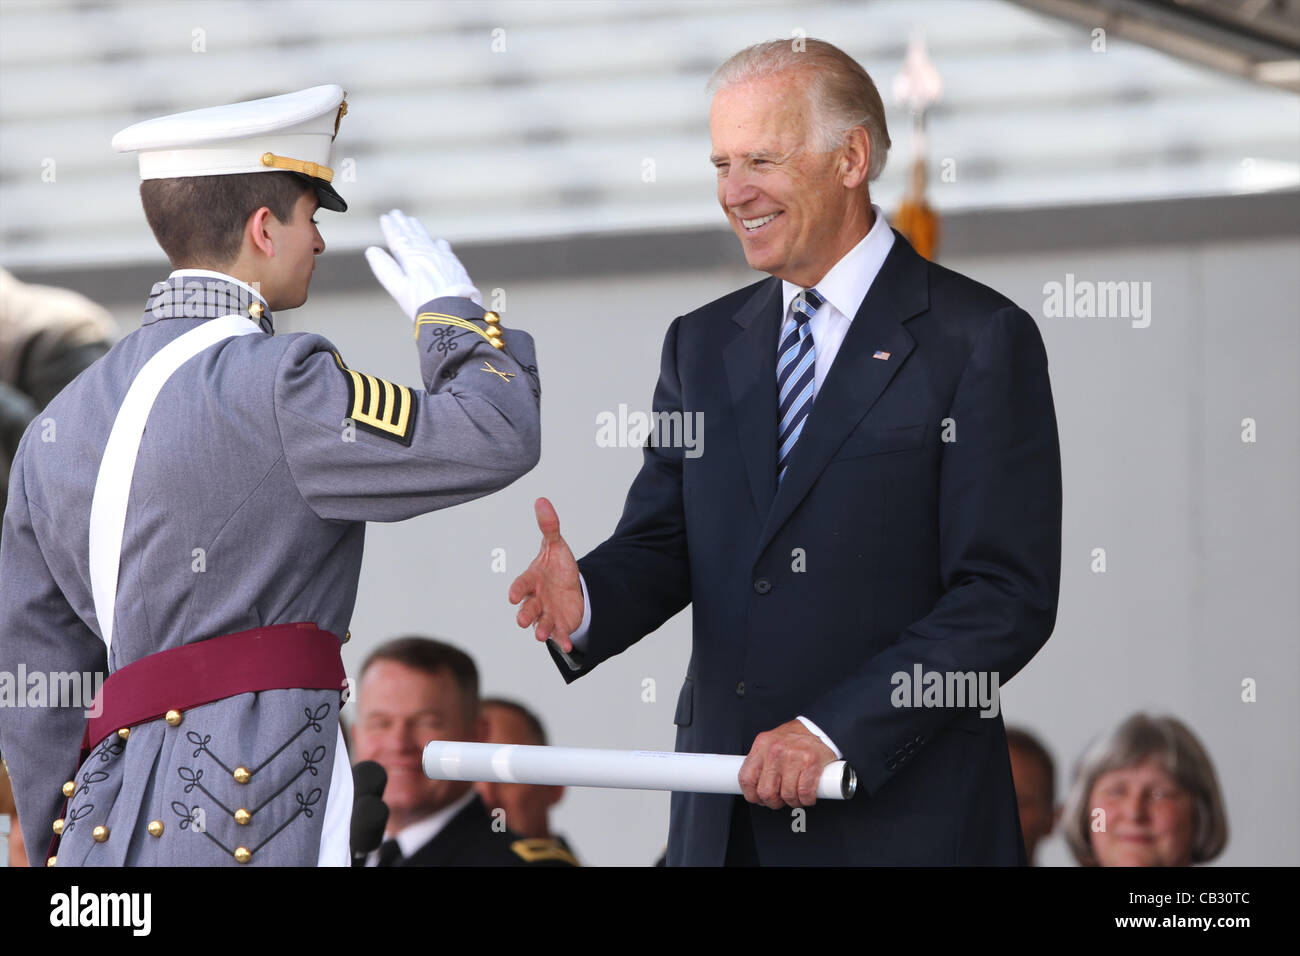 A graduating cadet from the US Military Academy class of 2012 receives his diploma from Vice President Joe Biden - Stock Image